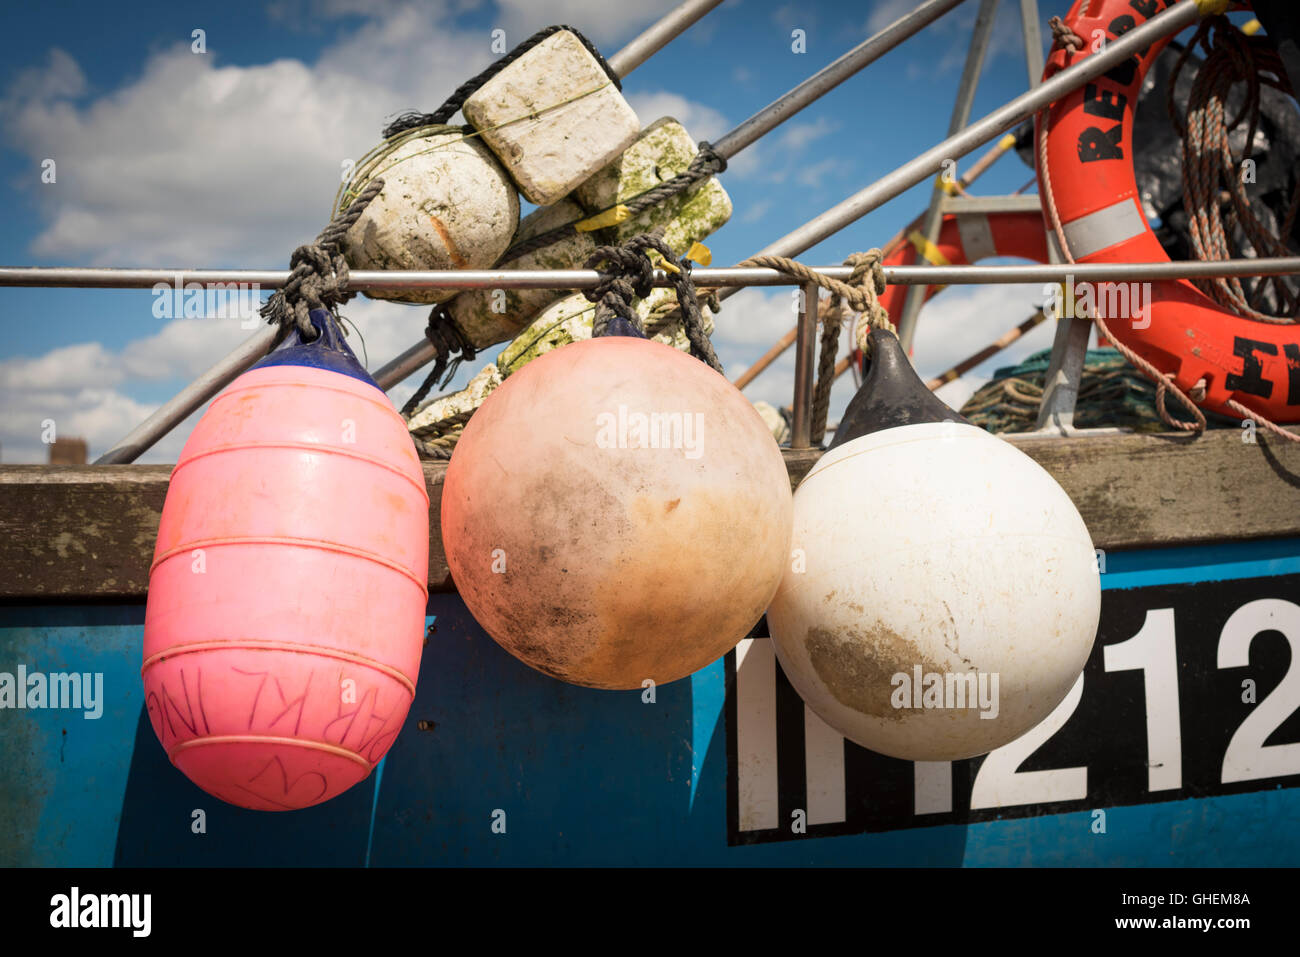 A close up fishing buoys and floats on a commercial ...